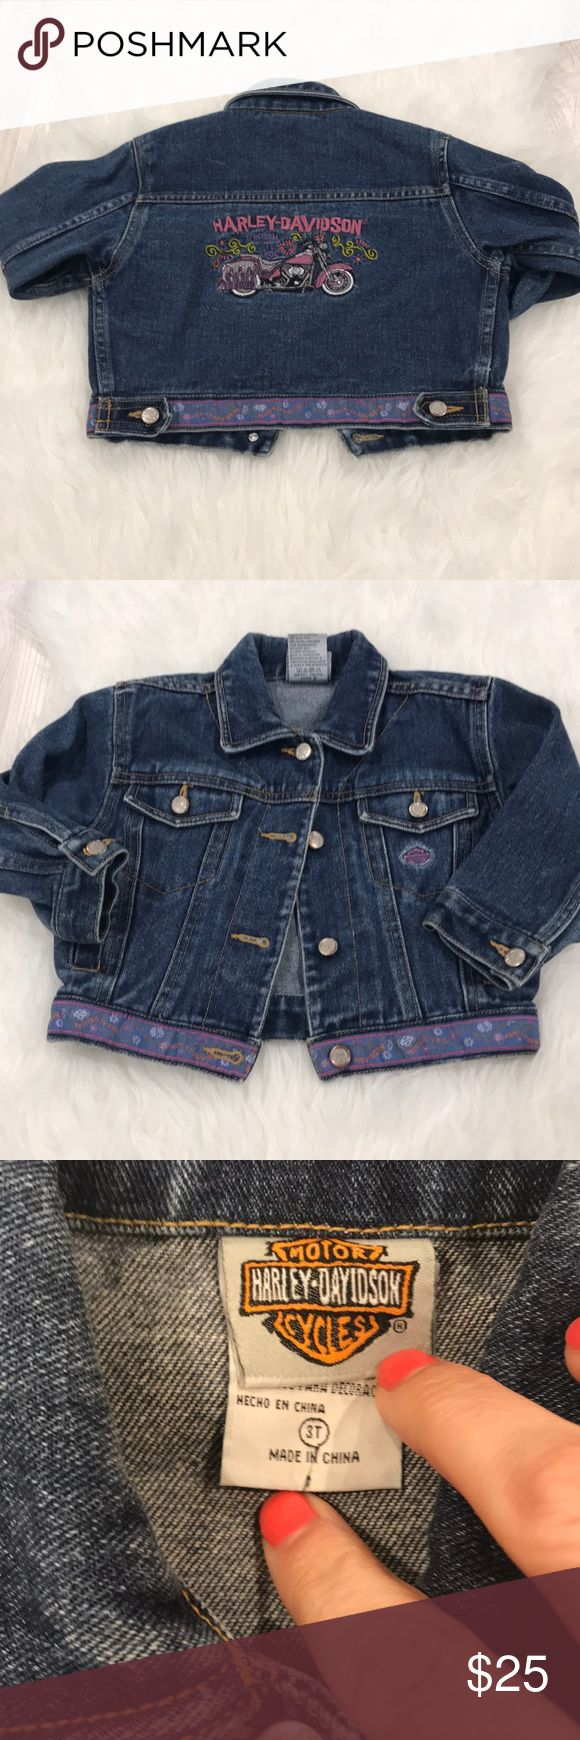 Harley Davidson Jean Jacket - 3T Harley Davidson Jean Jacket in size 3T. Super cute floral pattern and pink accents. Great pre-owned condition. Previous owners name written on back of tag. Harley-Davidson Jackets & Coats Jean Jackets